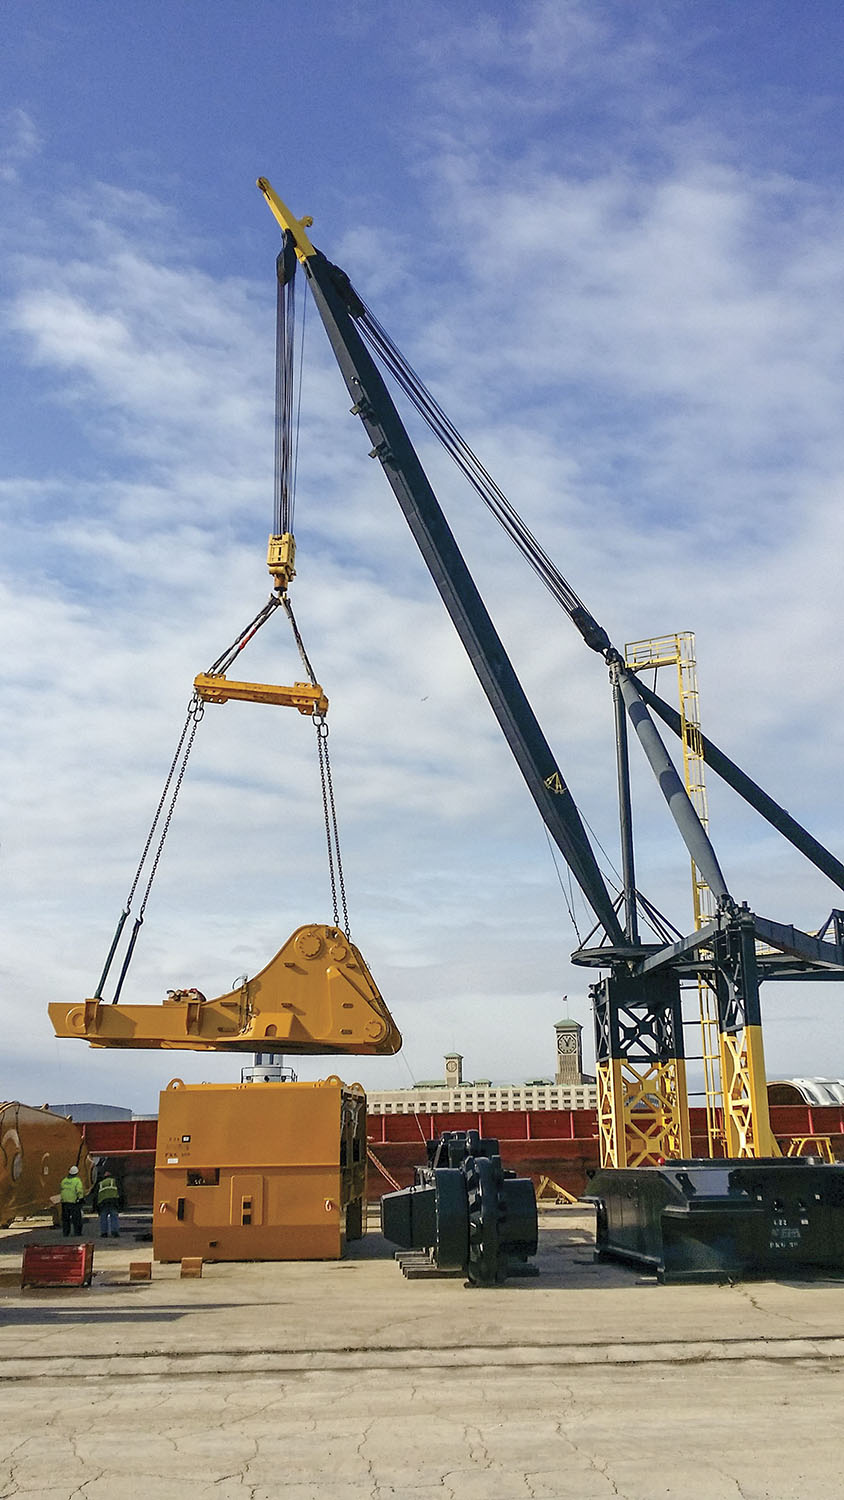 Mining equipment is loaded onto a river barge by Port Milwaukee's 220 ton Stiff Leg Derrick for transit to Houston via the inland waterway system. Port Milwaukee is one of few Great Lakes ports with access to the Mississippi for tug-and-barge service connectivity to Lake Michigan. (Photo courtesy of Port Milwaukee)